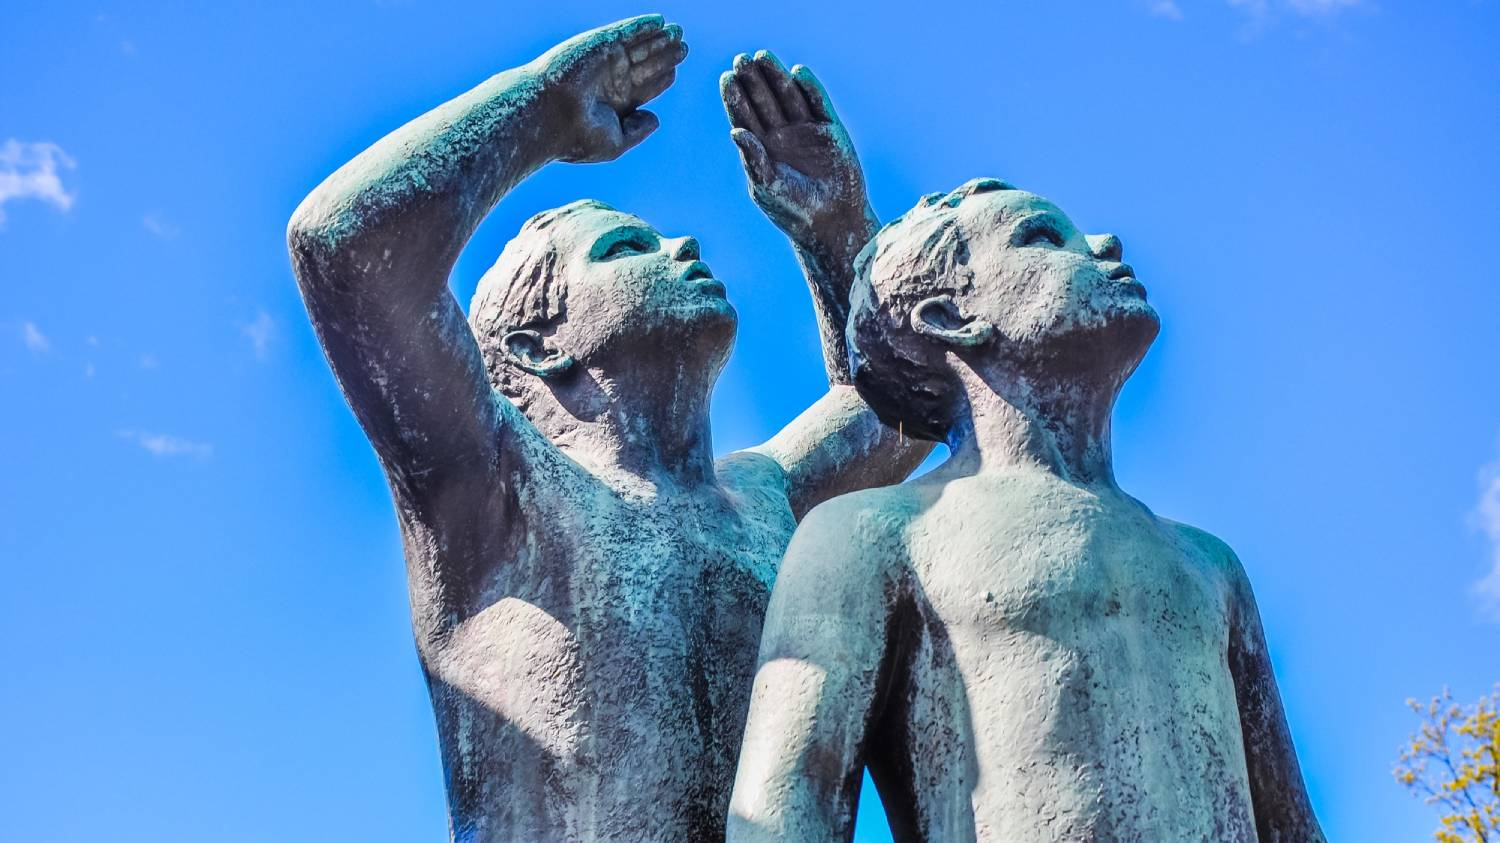 Vigeland Sculpture Park - Things To Do In Oslo